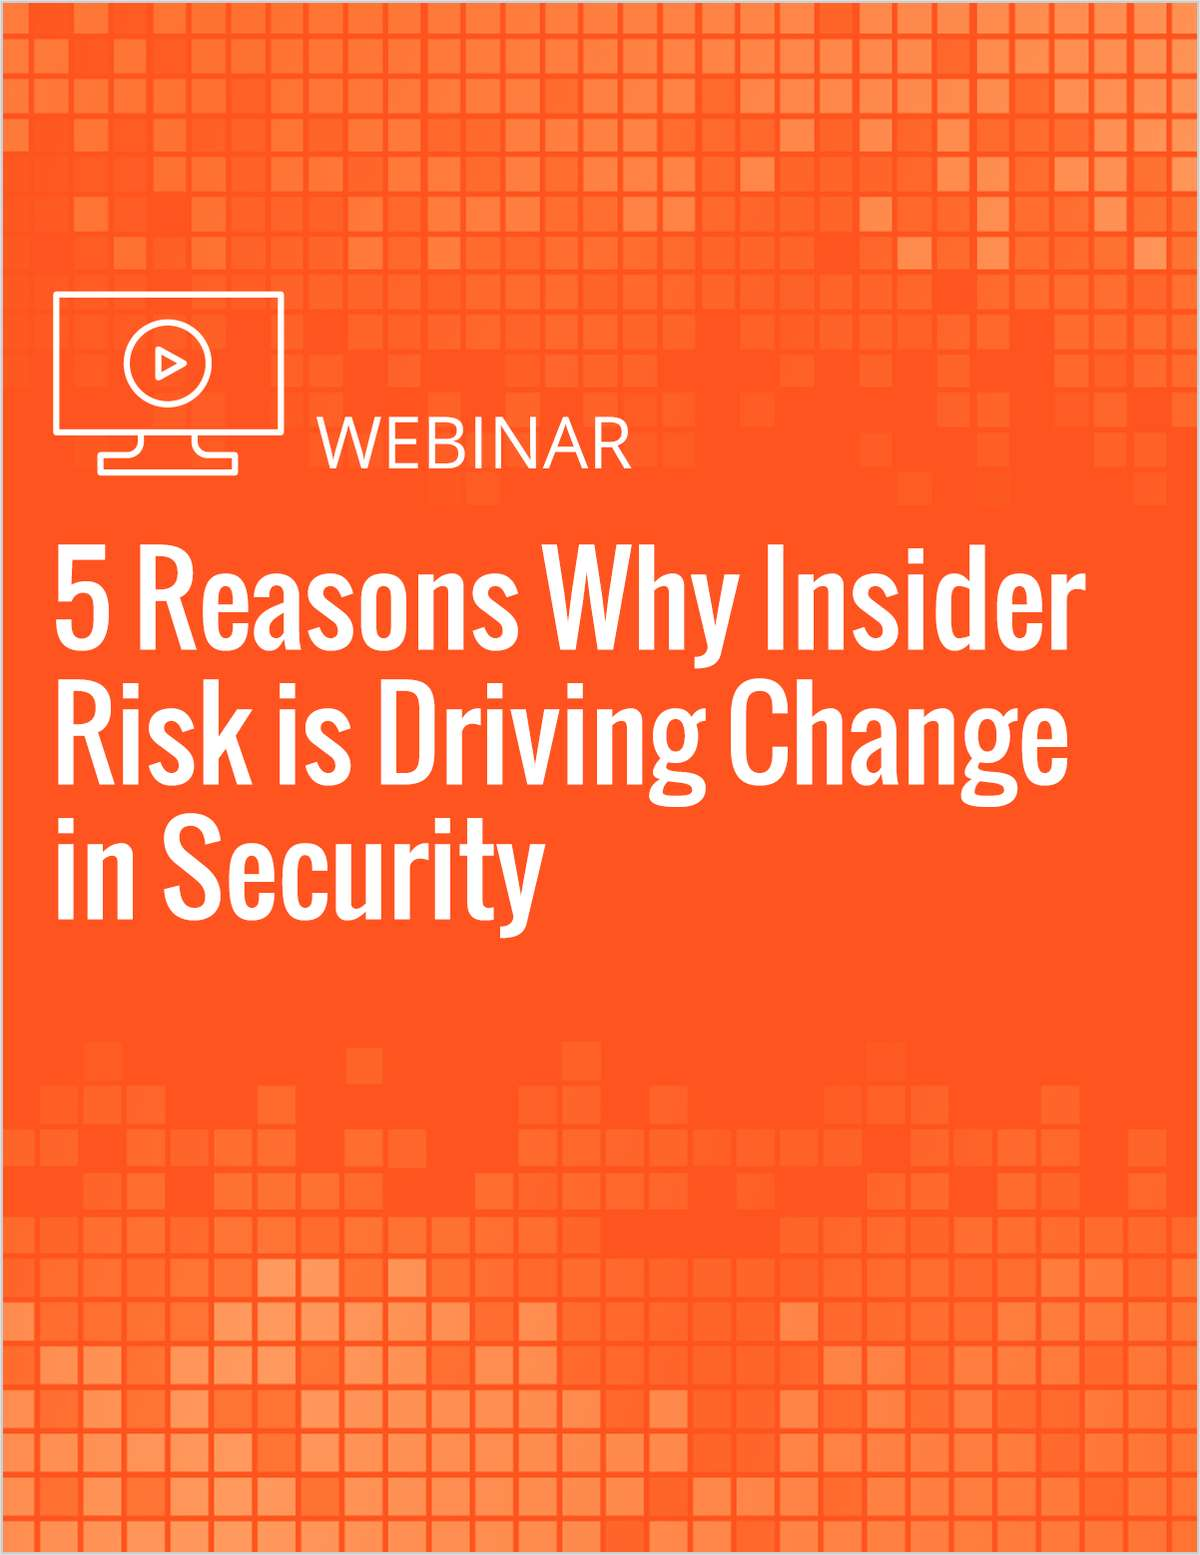 5 Reasons Why Insider Risk is Driving Change in Security